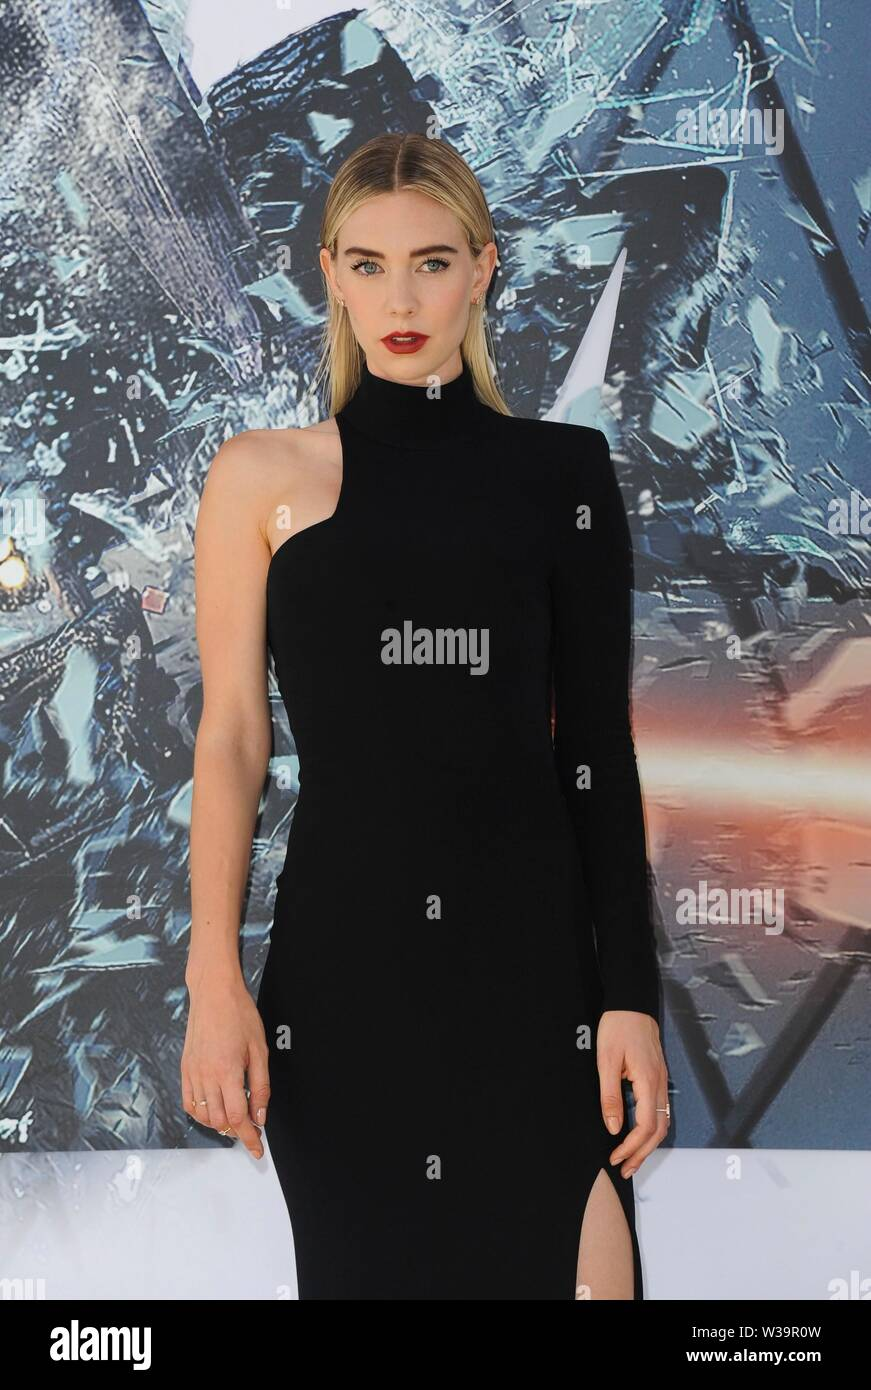 Los Angeles, CA, USA. 13th July, 2019. Vanessa Kirby at arrivals for FAST & FURIOUS PRESENTS: HOBBS & SHAW Premiere, The Dolby Theatre at Hollywood and Highland Center, Los Angeles, CA July 13, 2019. Credit: Elizabeth Goodenough/Everett Collection/Alamy Live News Stock Photo